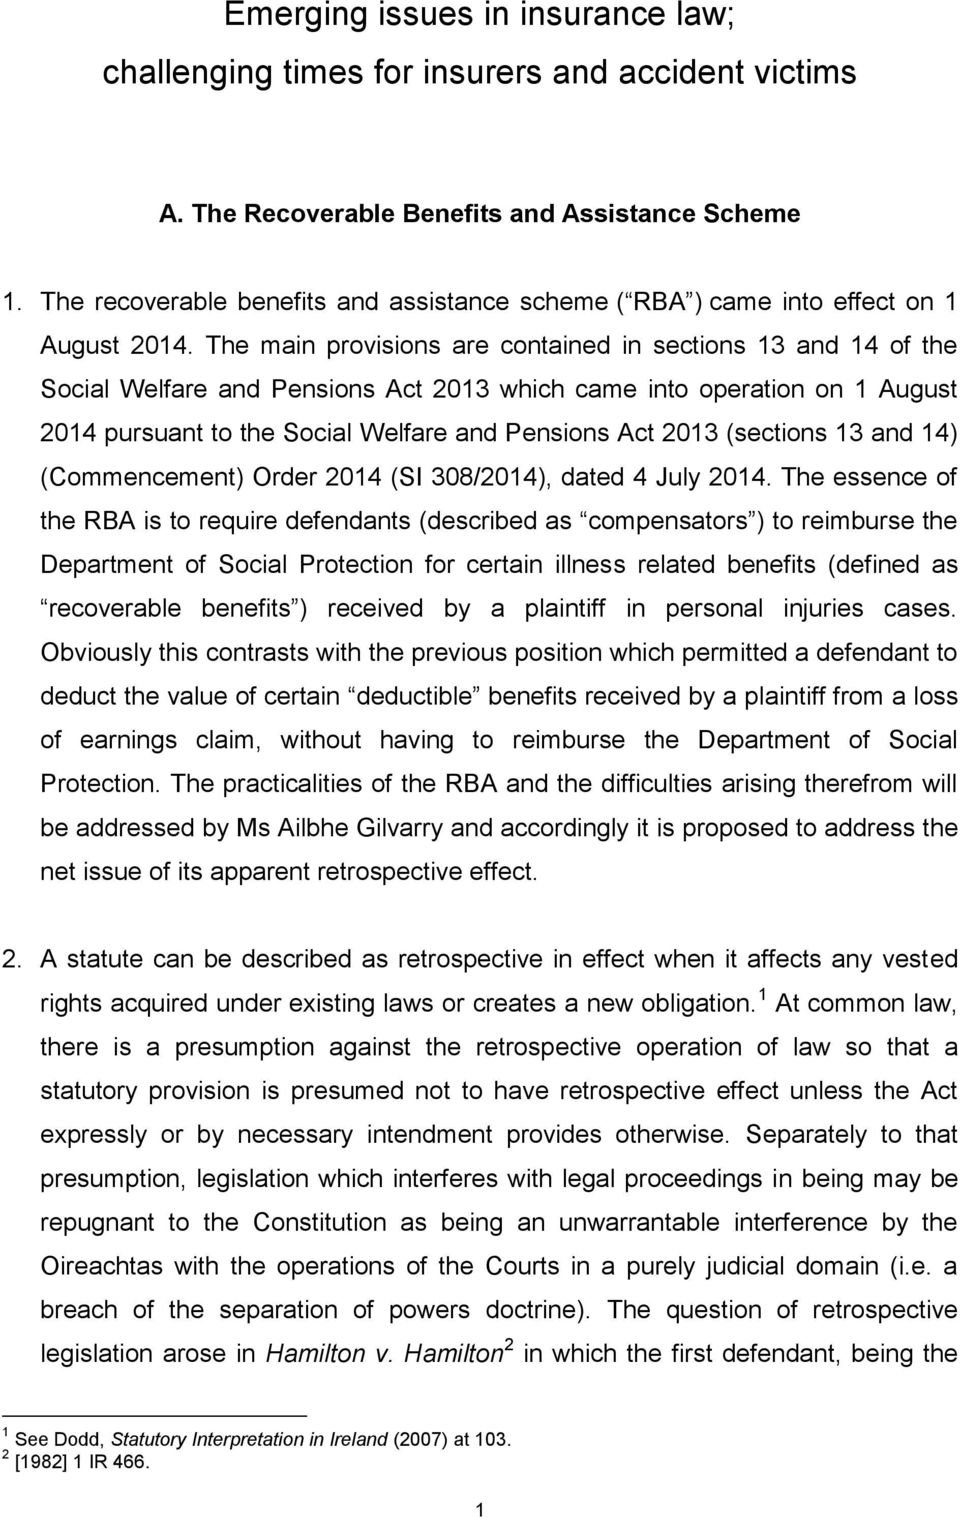 The main provisions are contained in sections 13 and 14 of the Social Welfare and Pensions Act 2013 which came into operation on 1 August 2014 pursuant to the Social Welfare and Pensions Act 2013